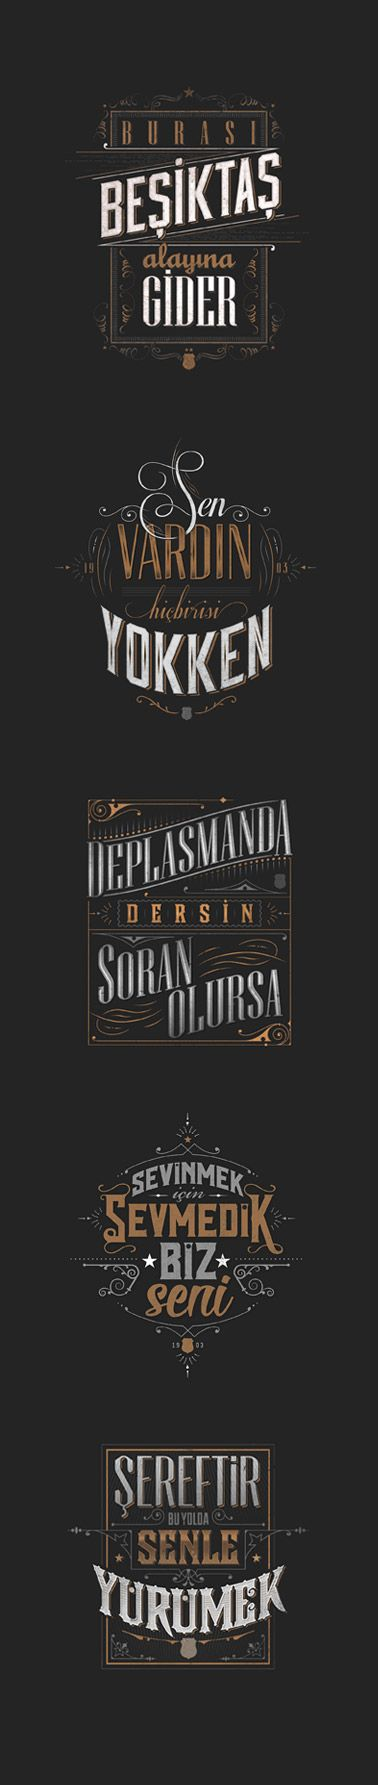 Typographic posters and t-shirts inspired by widely popular fan chants for the Turkish football team Besiktas JK. #besiktas #carsi #bjk #typography #vintage